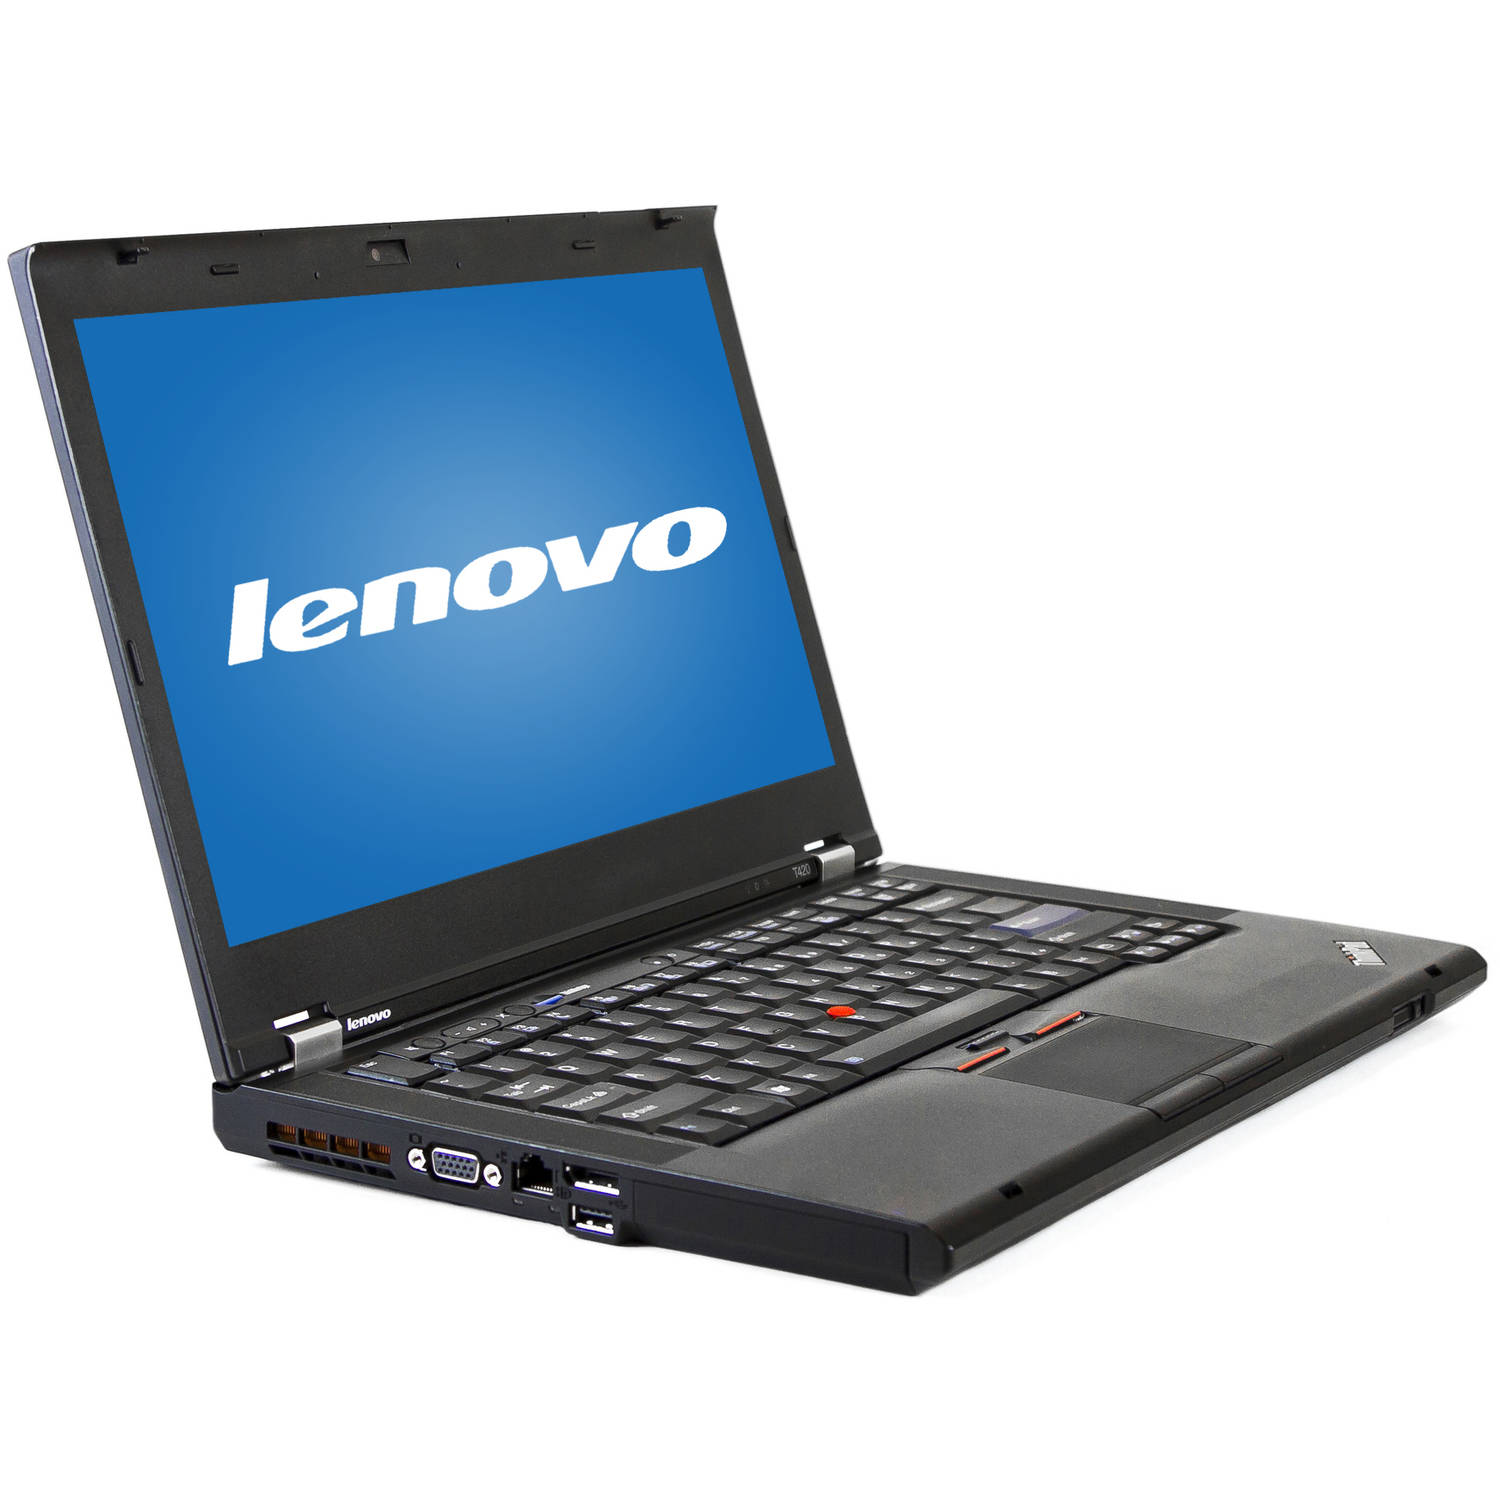 "Refurbished Lenovo Black 14"" Thinkpad T420 Laptop PC with Intel Core i5-2520M Processor, 8GB Memory, 128GB SSD and Windows 7 Professional"